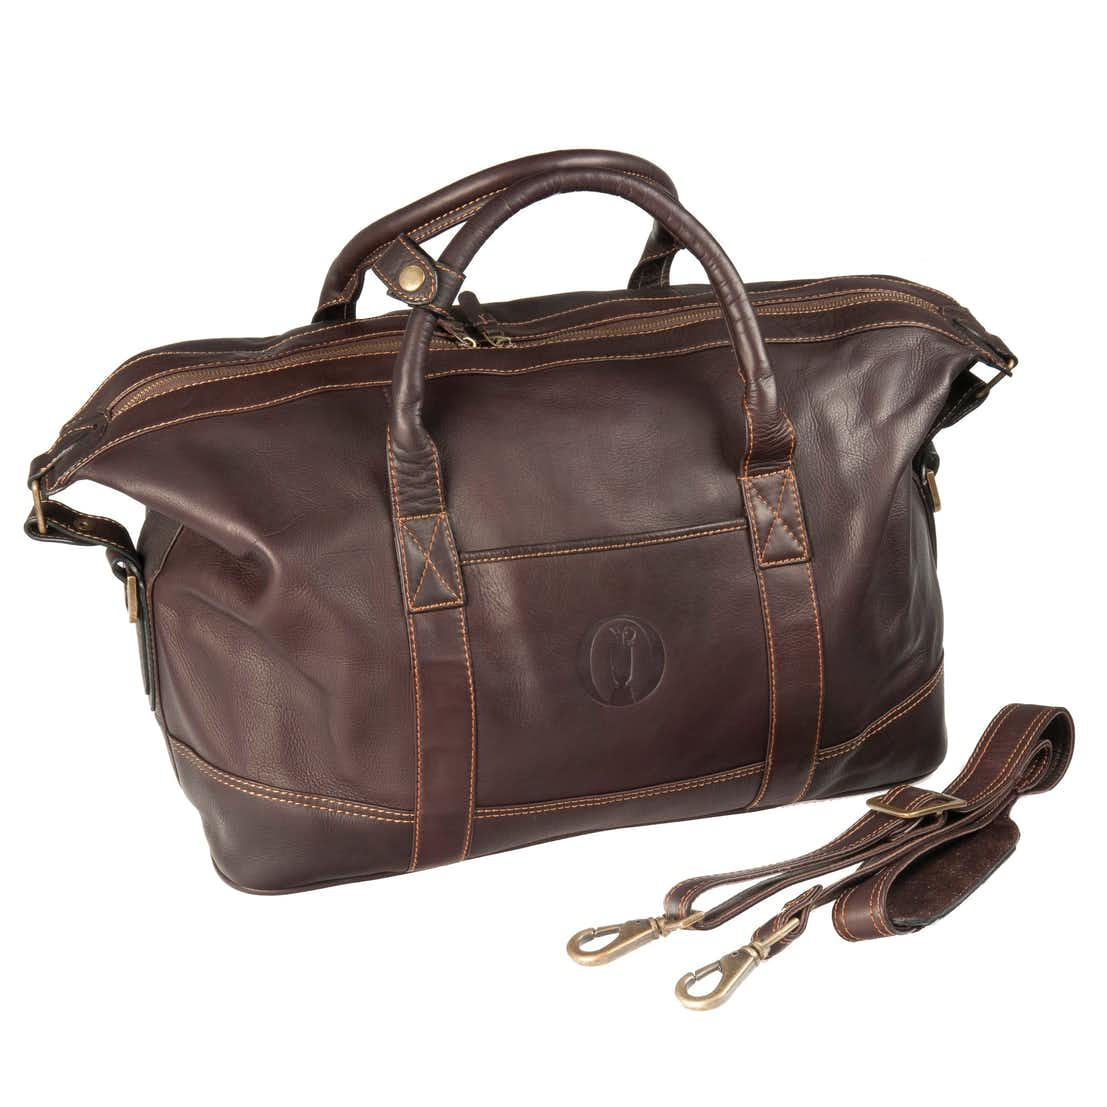 The Open Holdall Duffel Bag - Brown